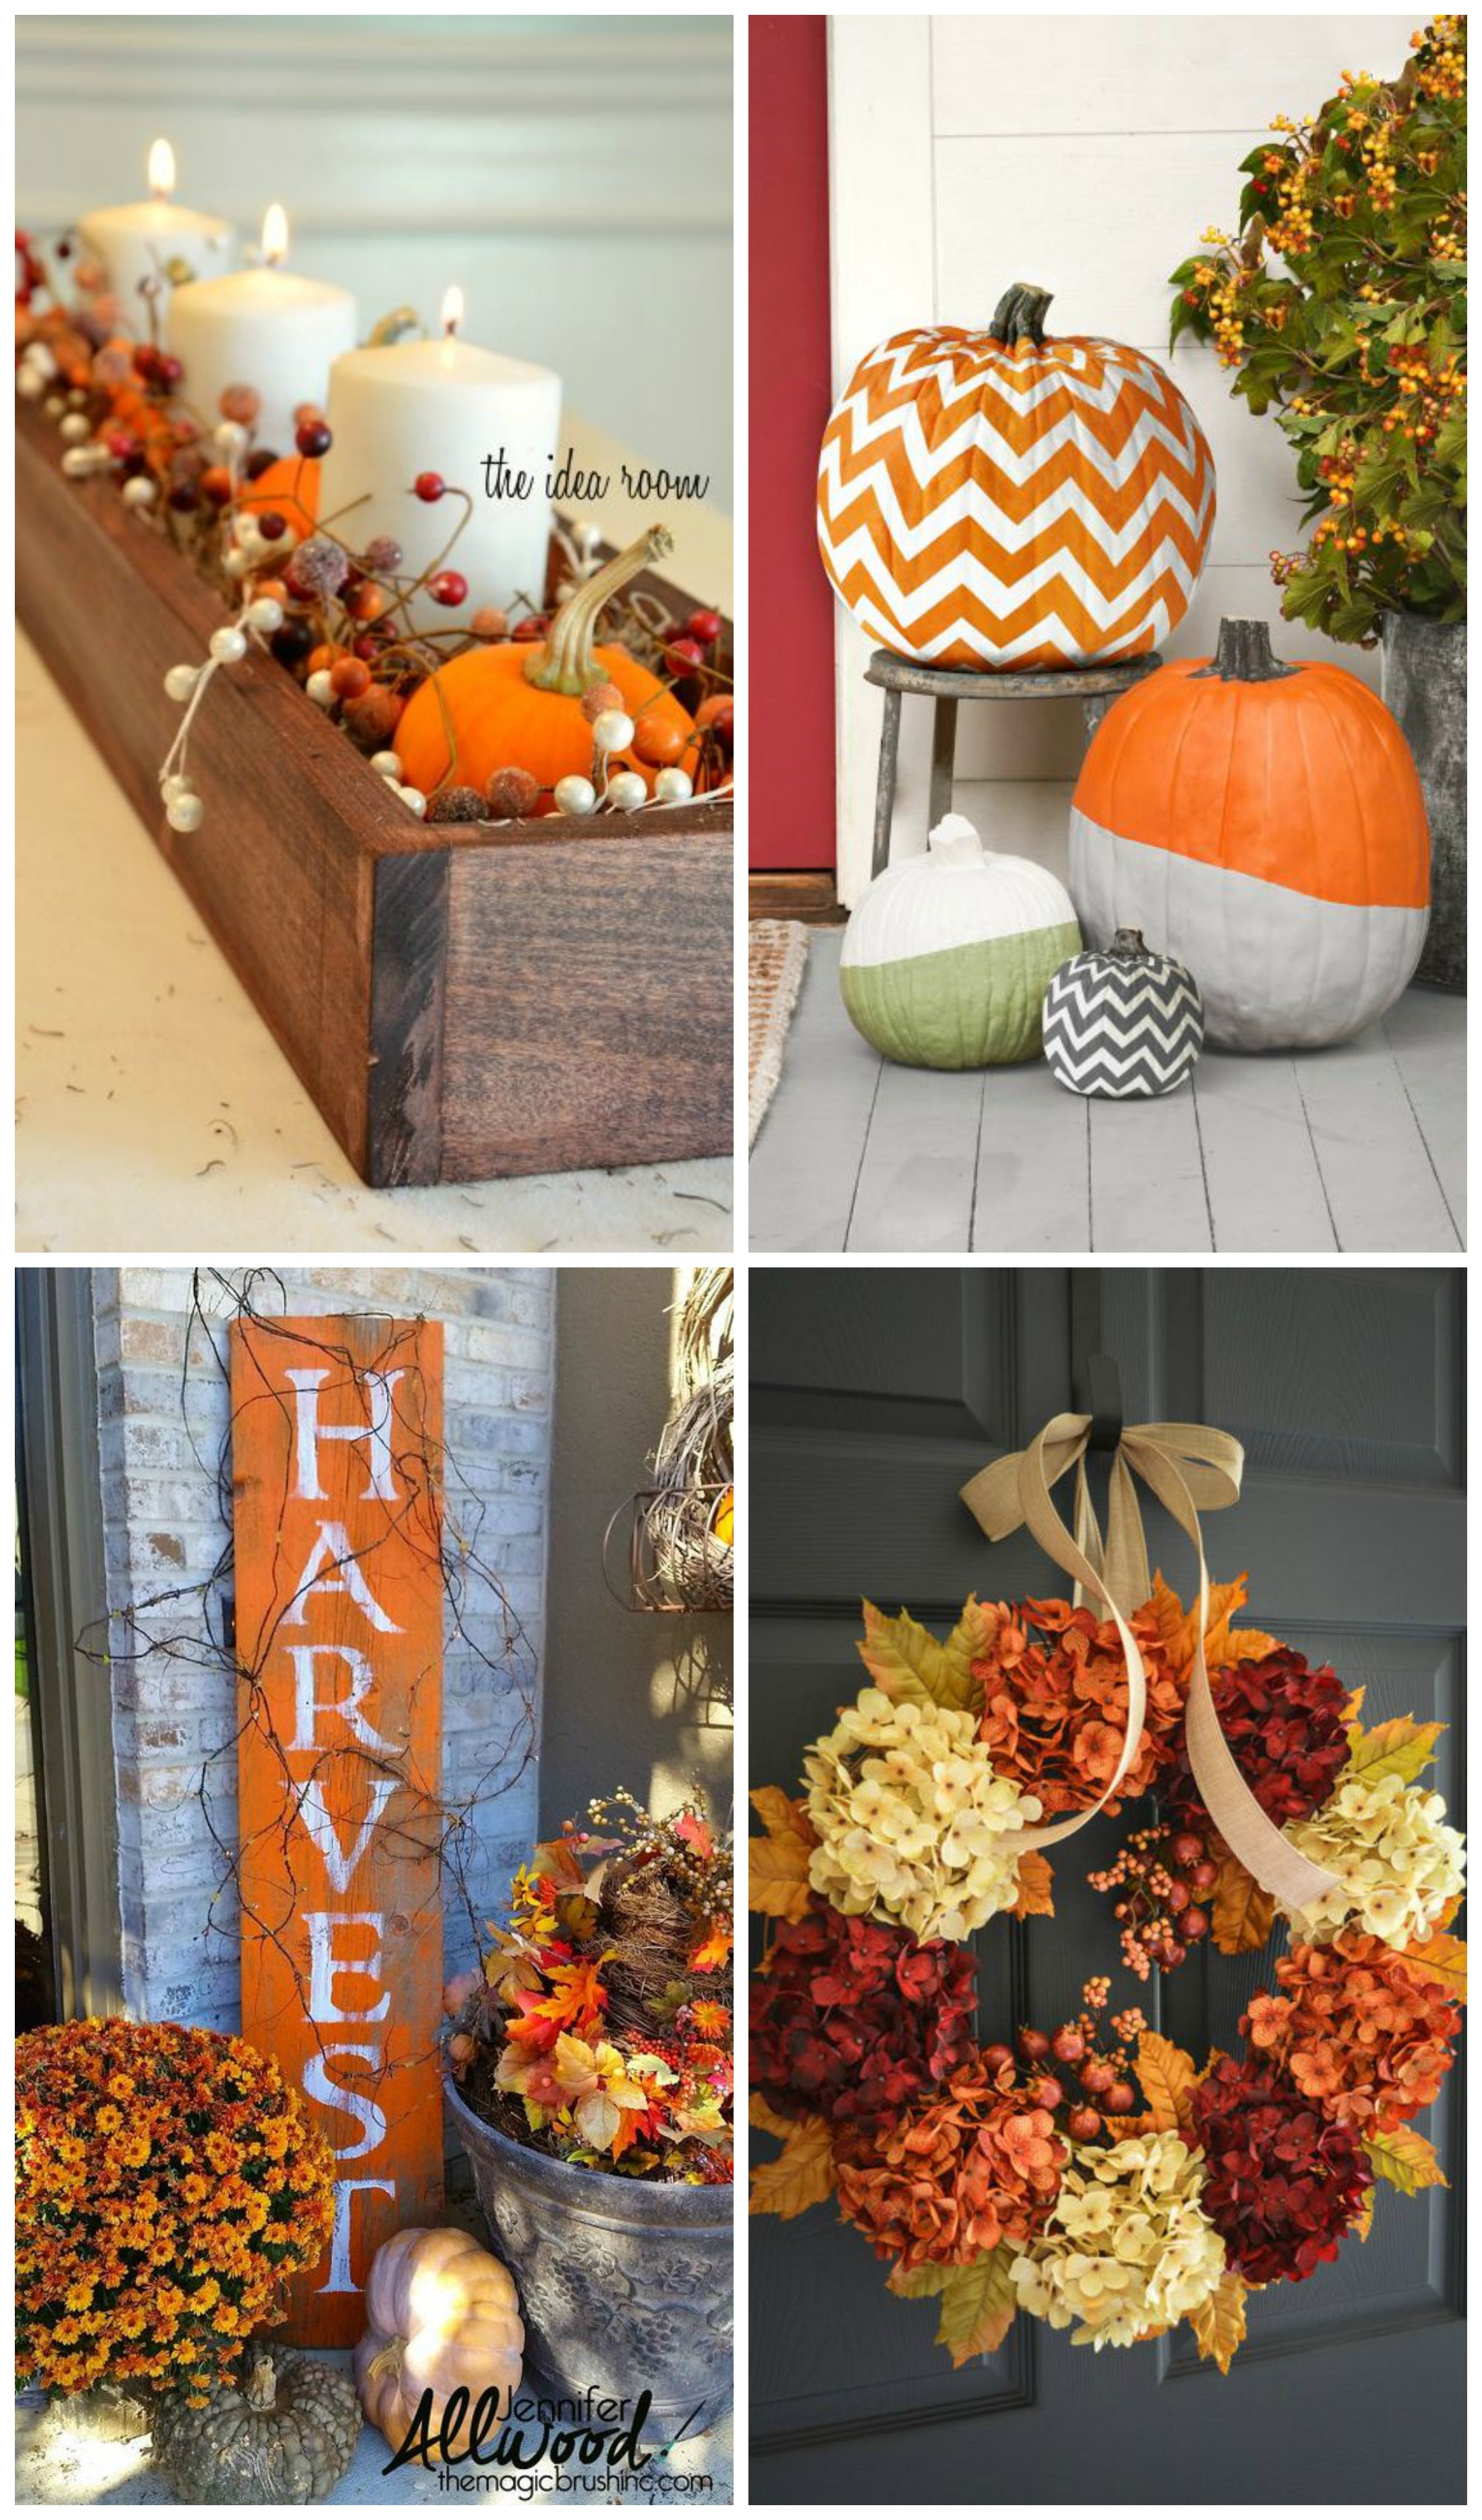 Fun Fall Decor Ideas - Custom Home Builders & New Home ...